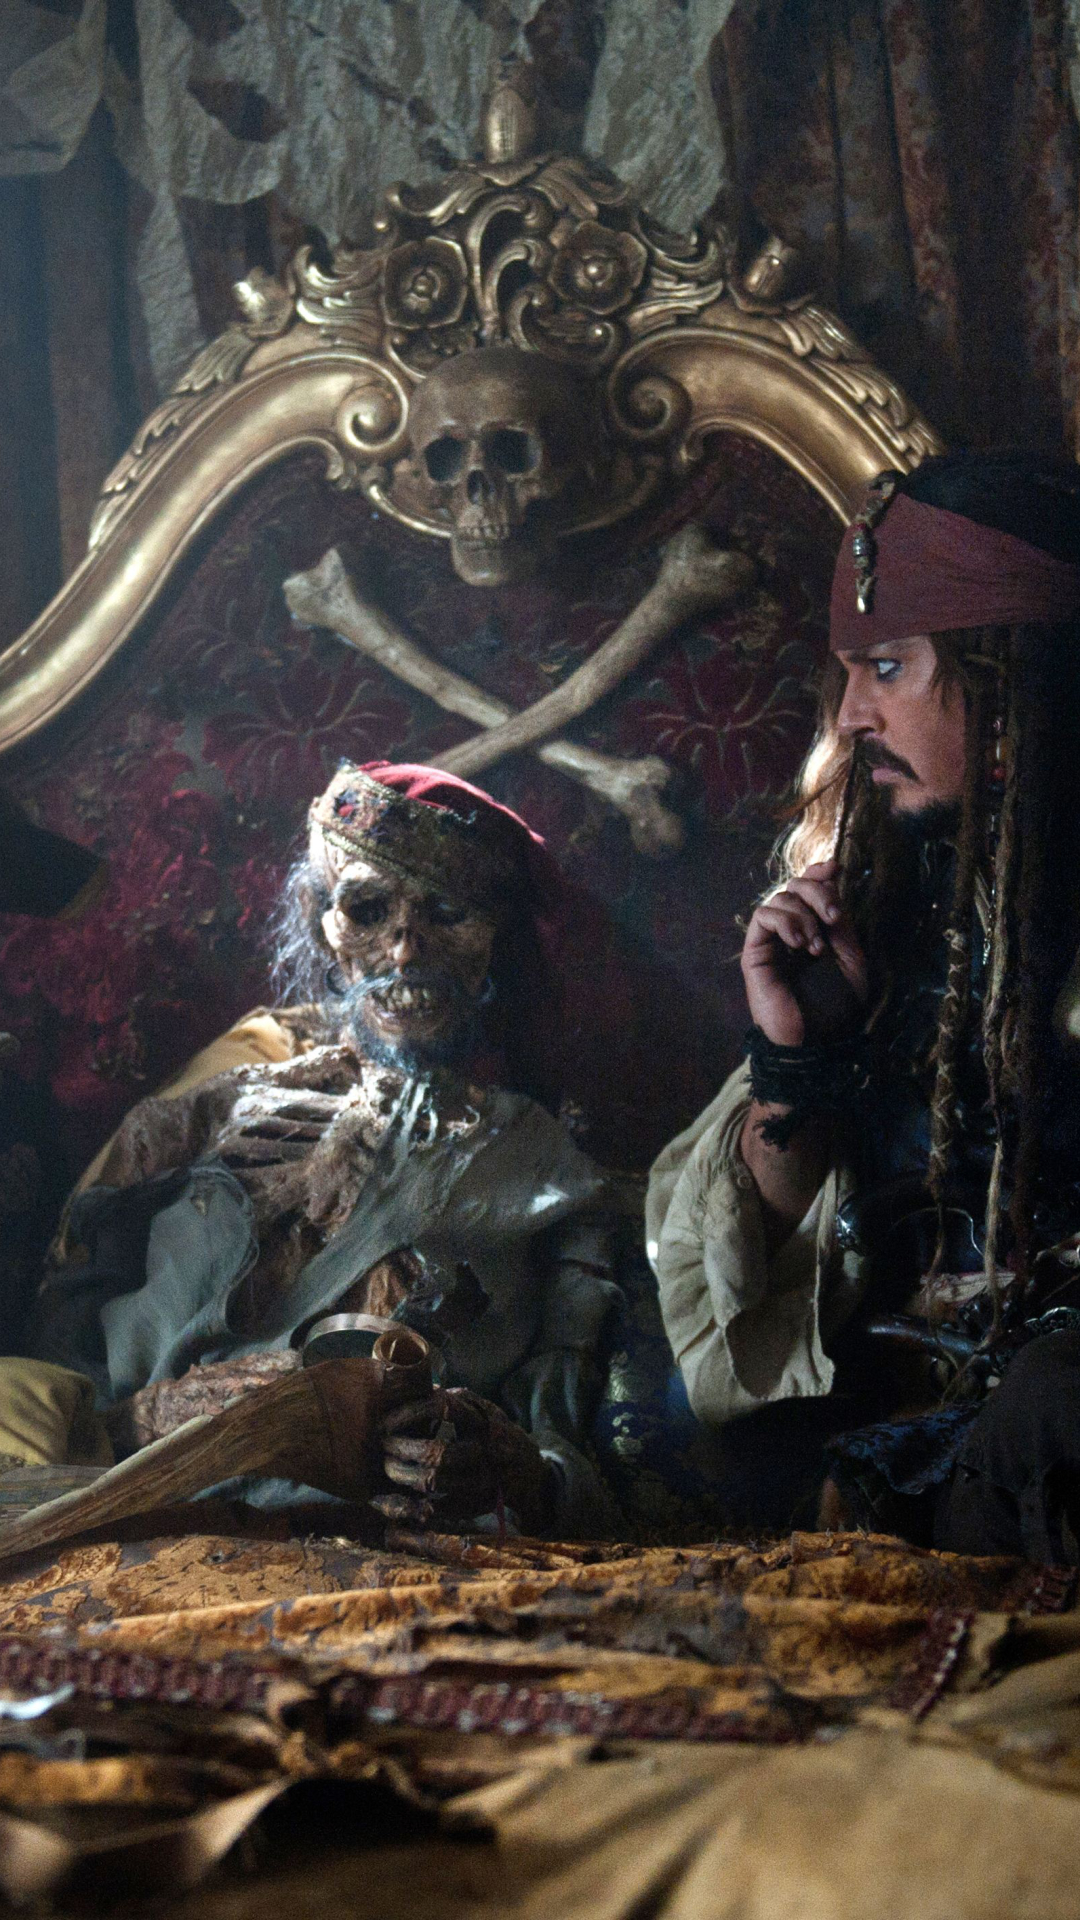 Moviepirates Of The Caribbean On Stranger Tides 1080x1920